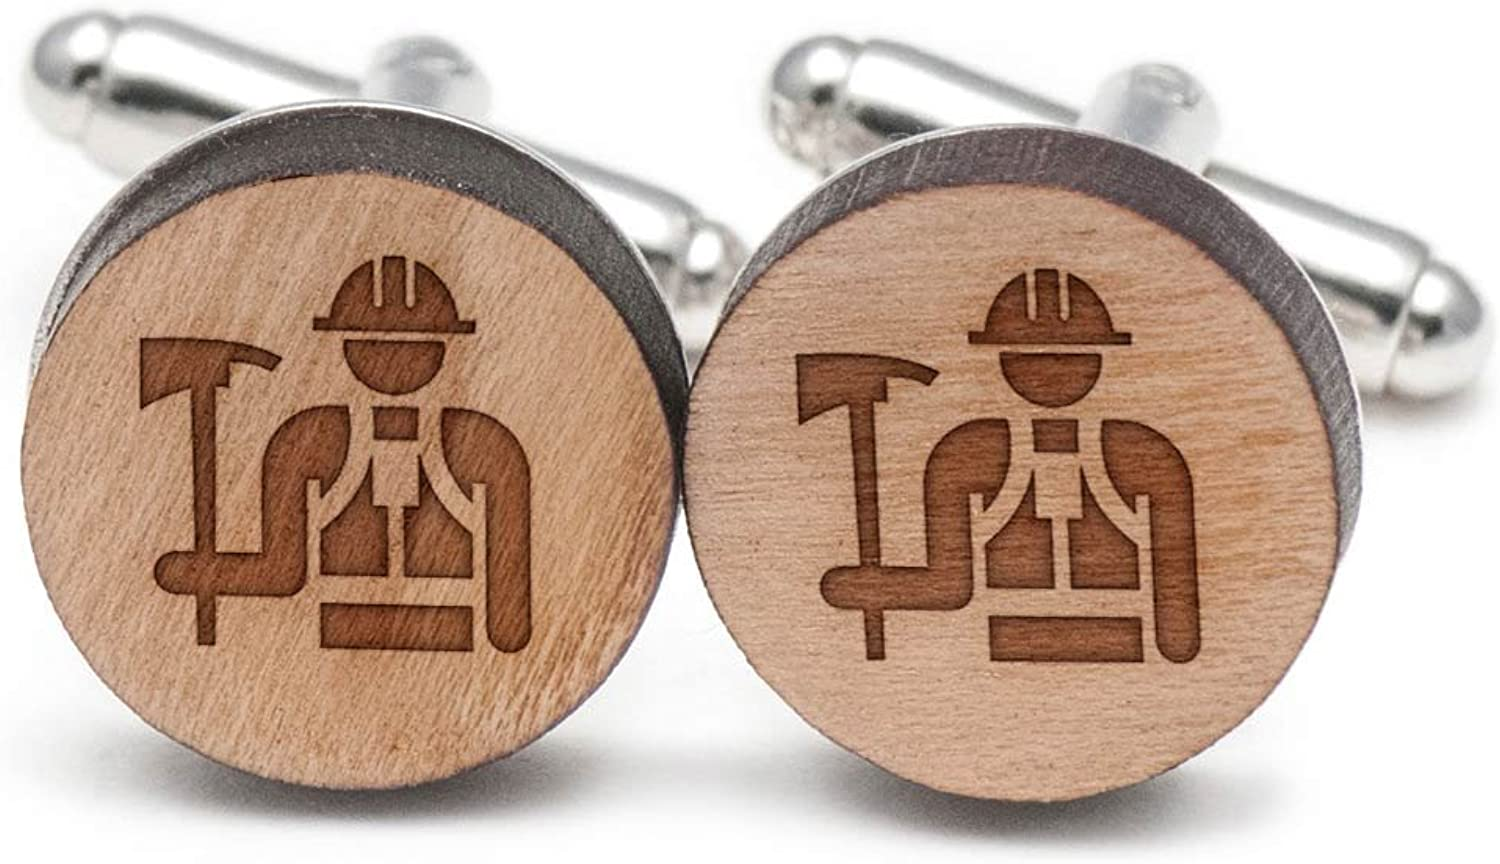 Wildland Firefighter Cufflinks, Wood Cufflinks Hand Made in the USA